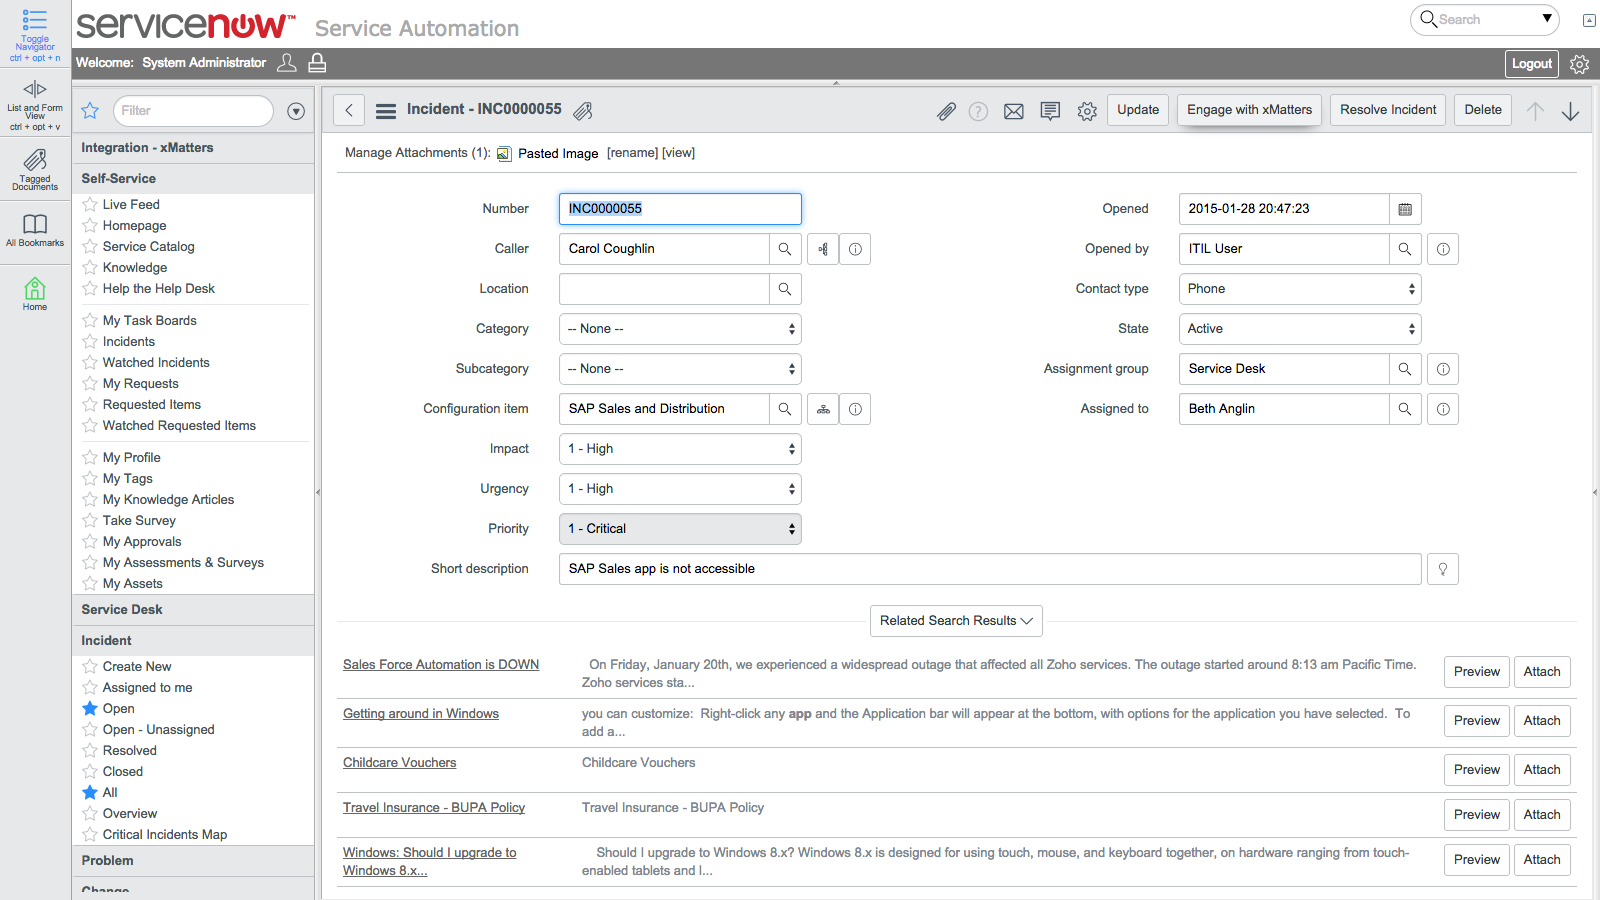 ServiceNow Integration | Automate Context-Rich Tickets - xMatters